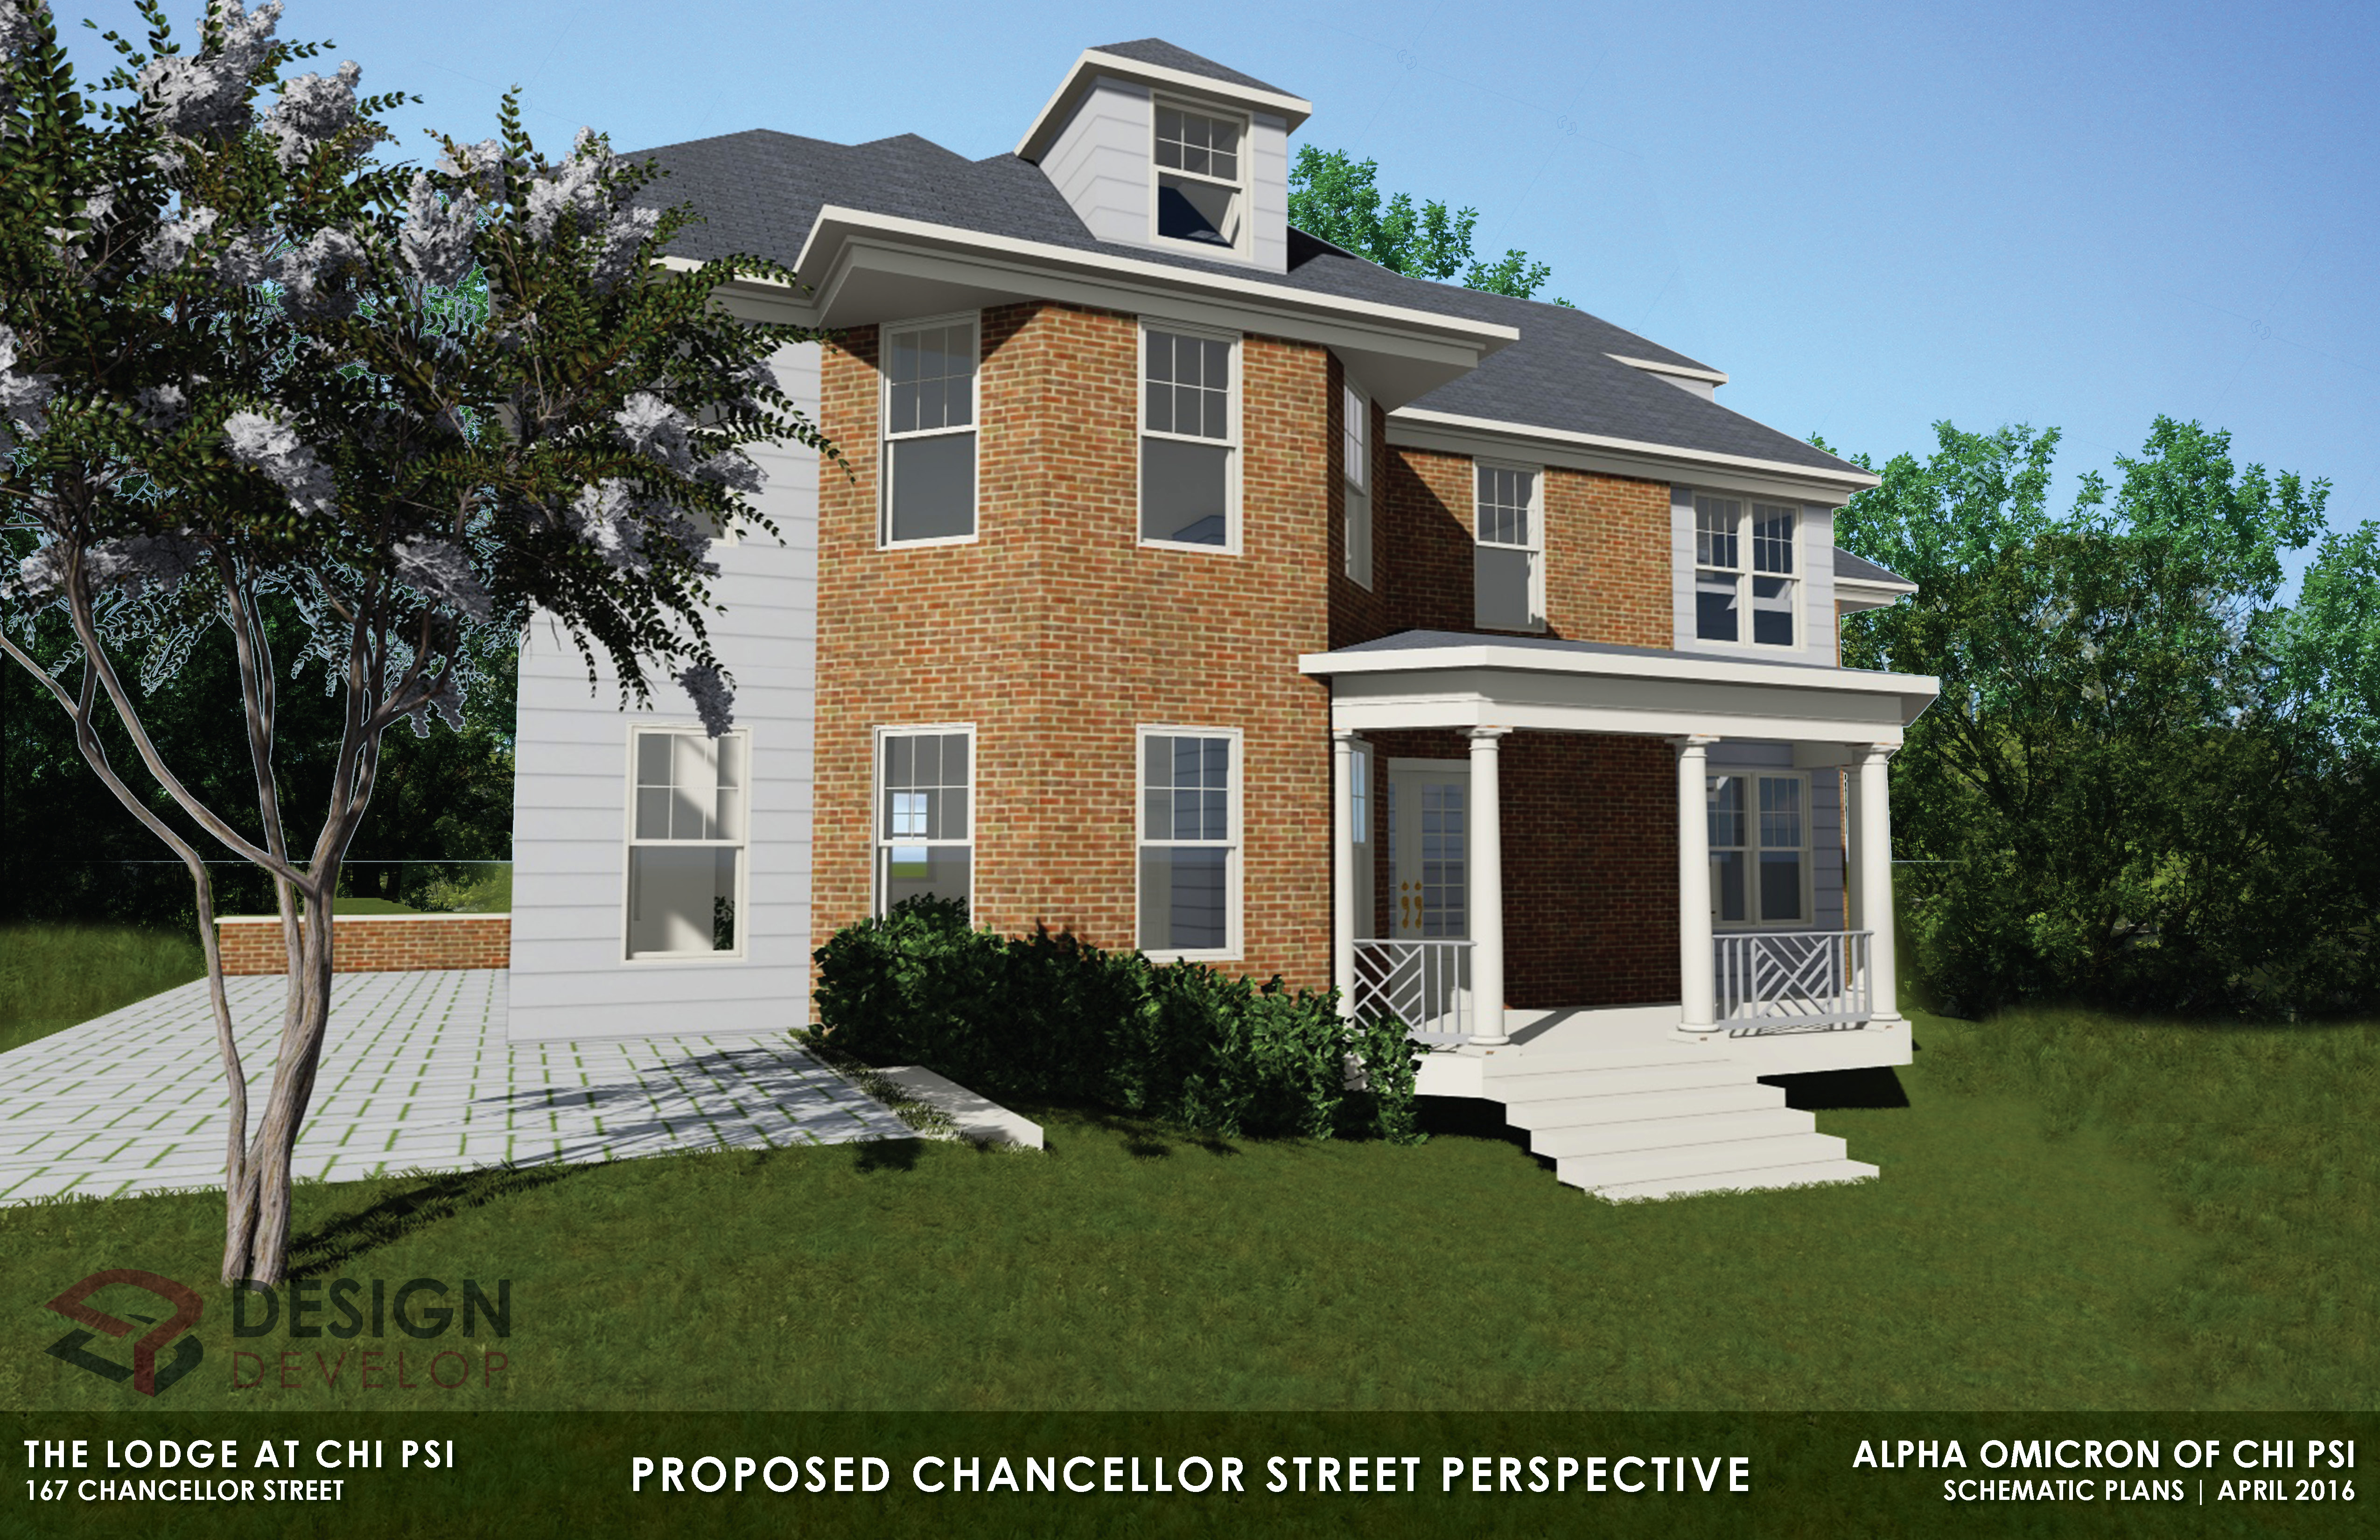 Proposed Chancellor Street Perspective